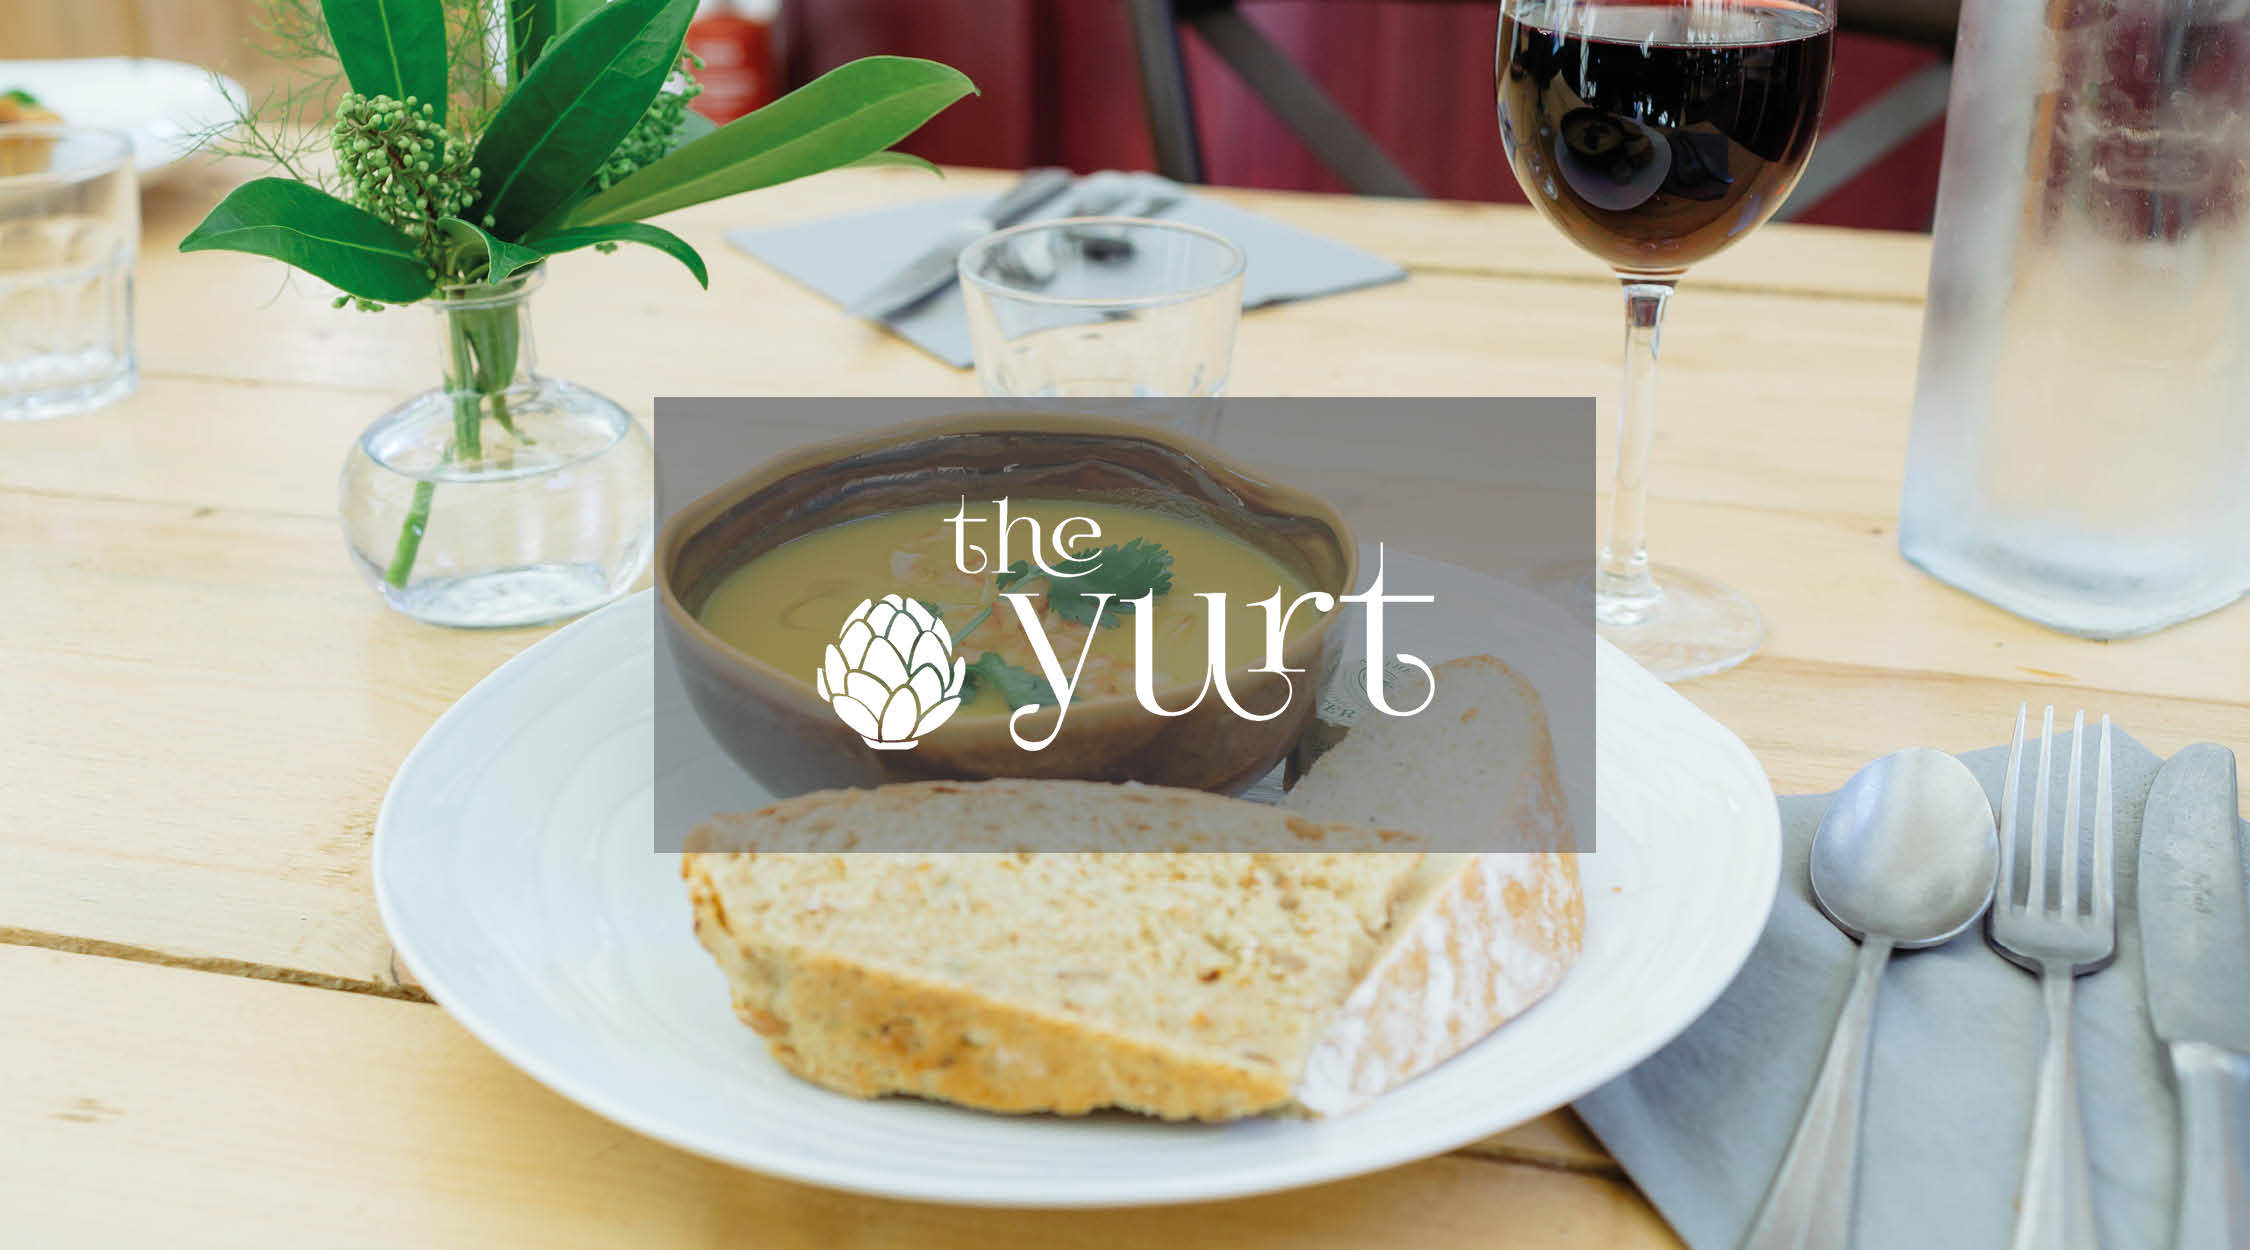 2016 – Yurt Cafe built and established